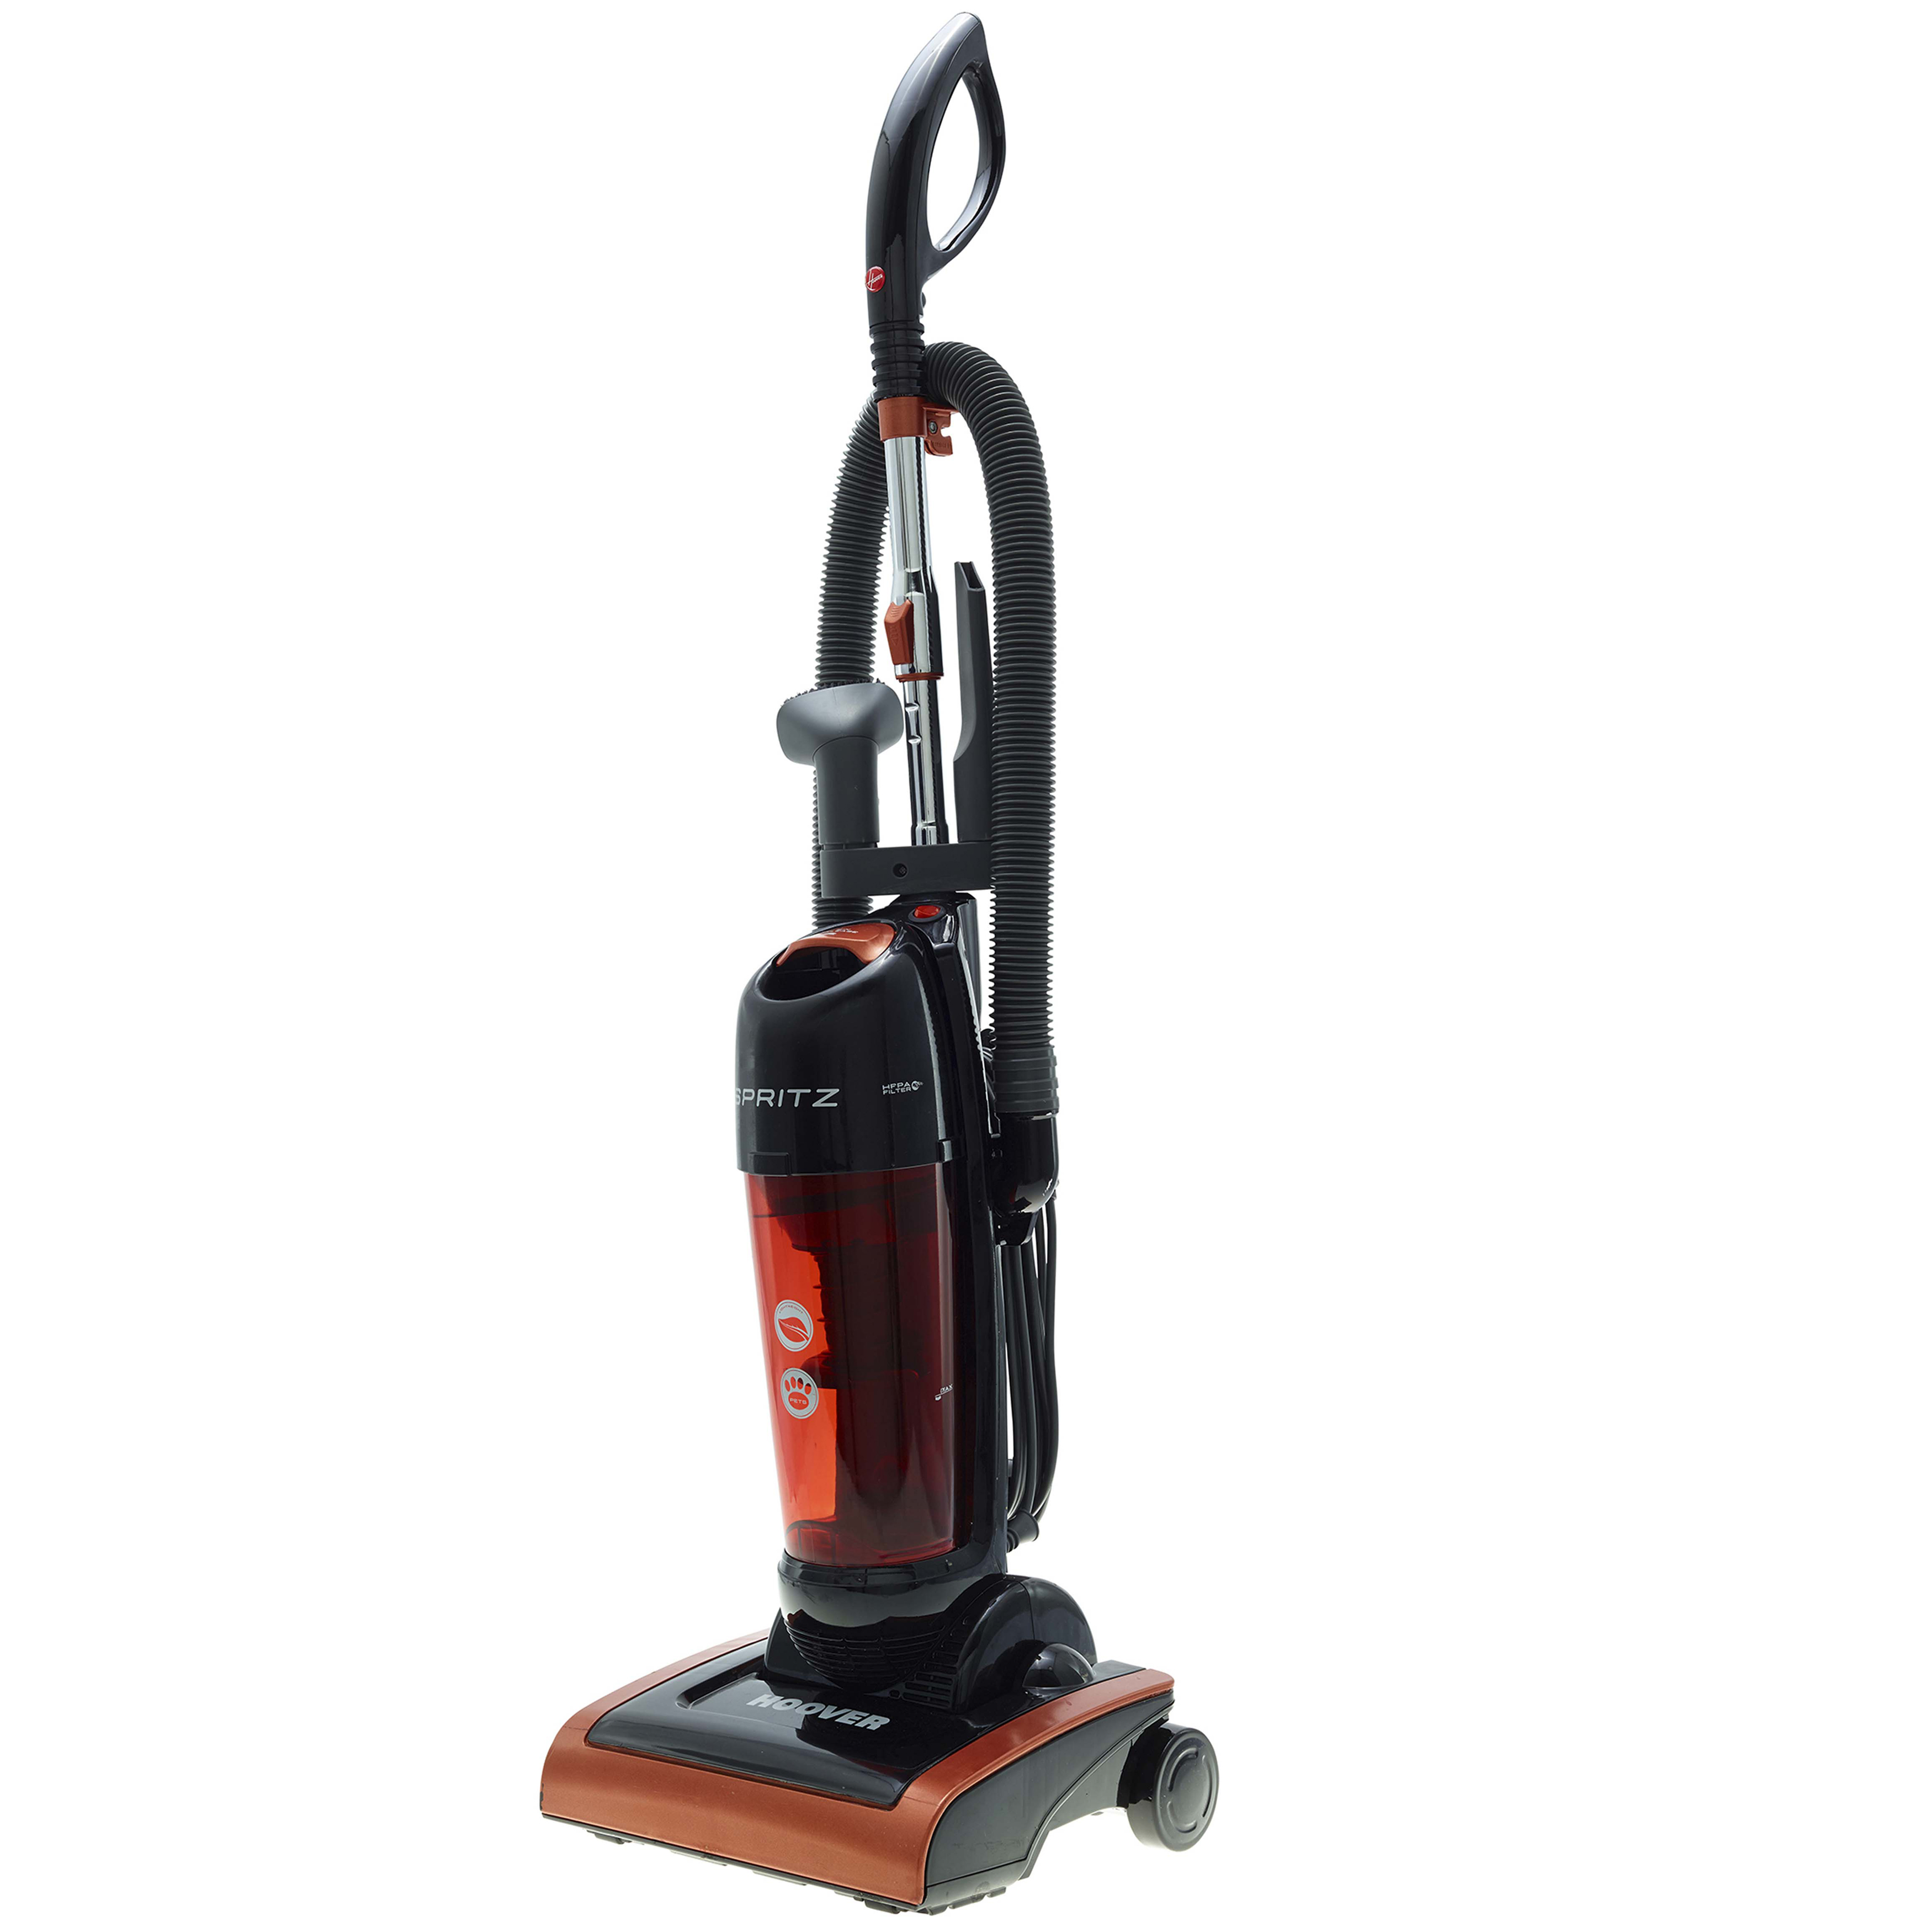 Hoover 39100442 Spritz Bagless Upright Vacuum Cleaner In